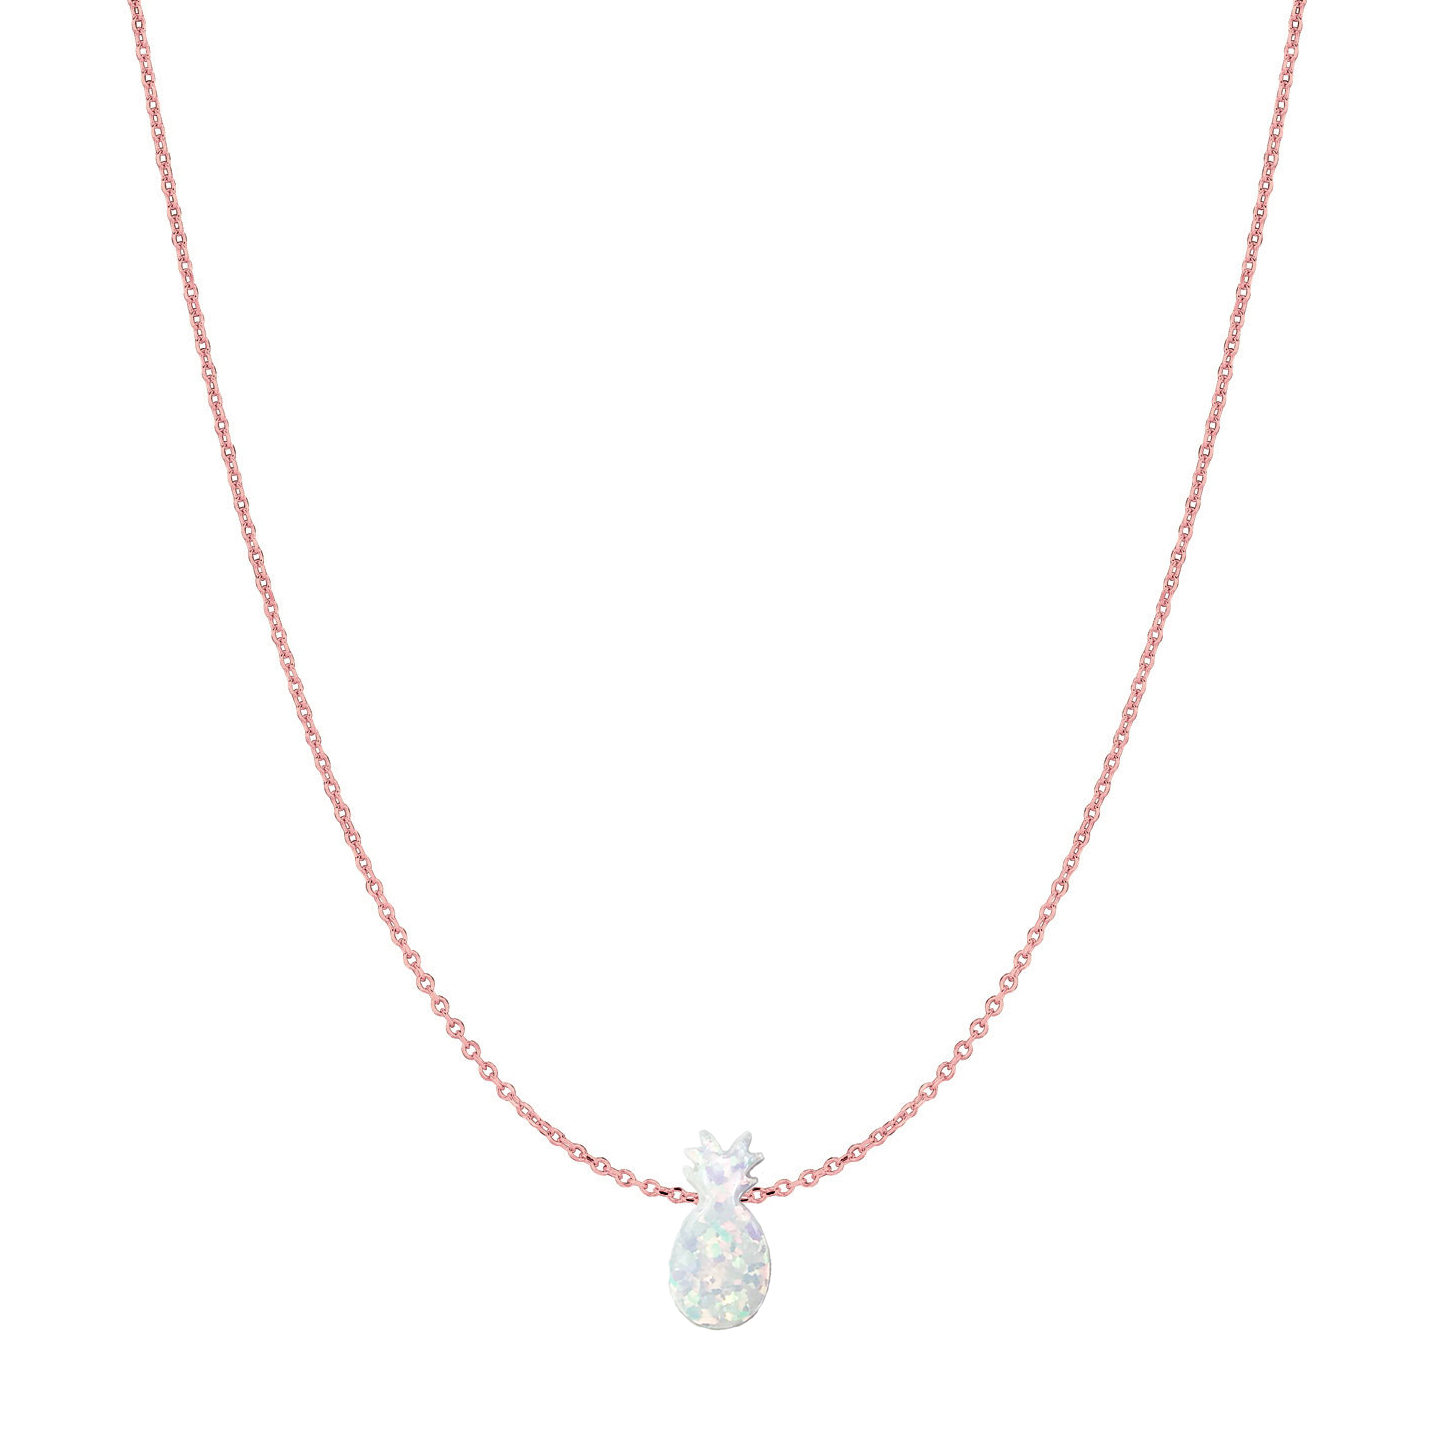 14 Karat Gold Pure White Opal Pineapple Necklace